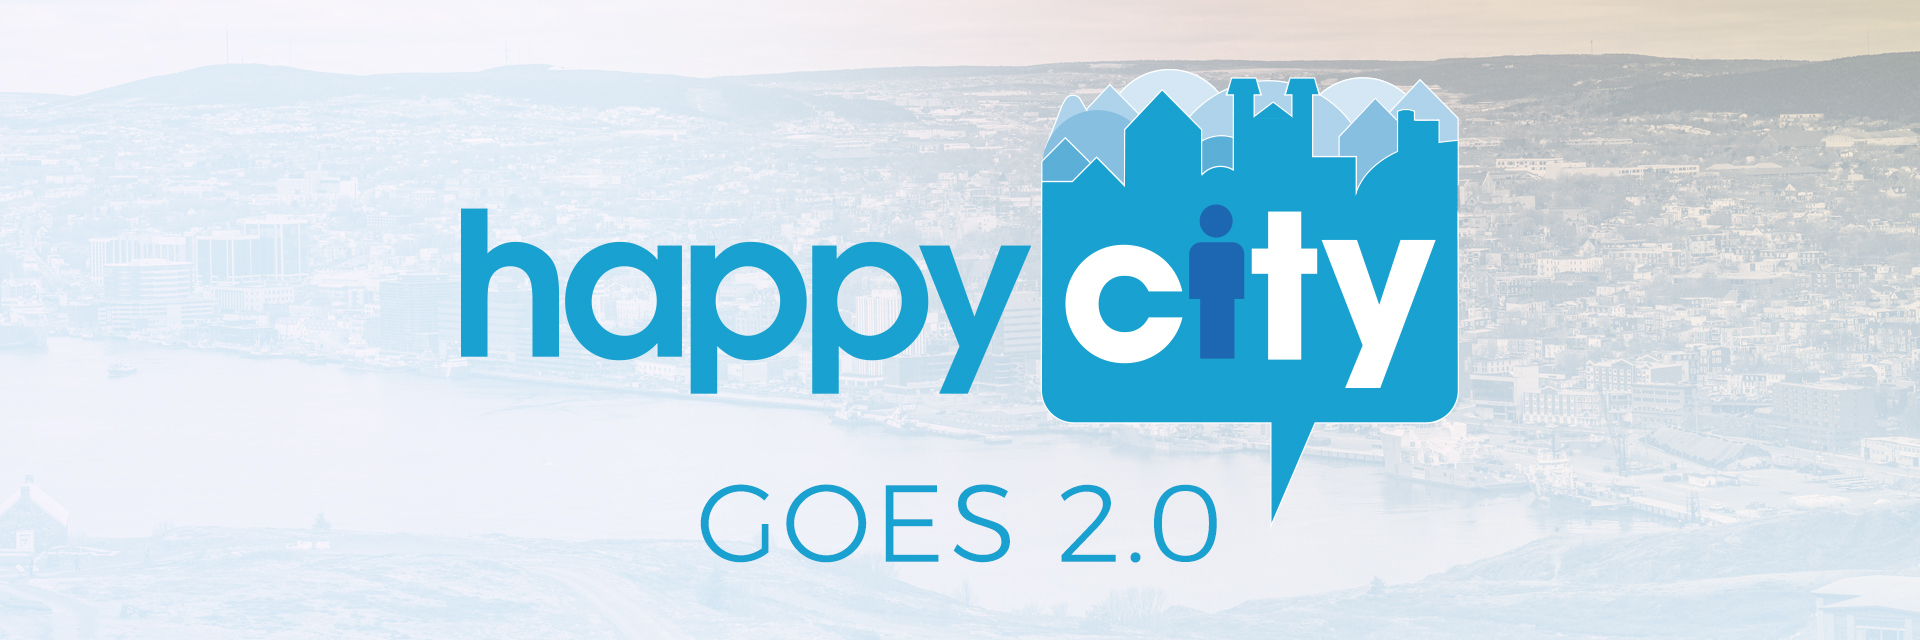 Happy City goes 2.0!